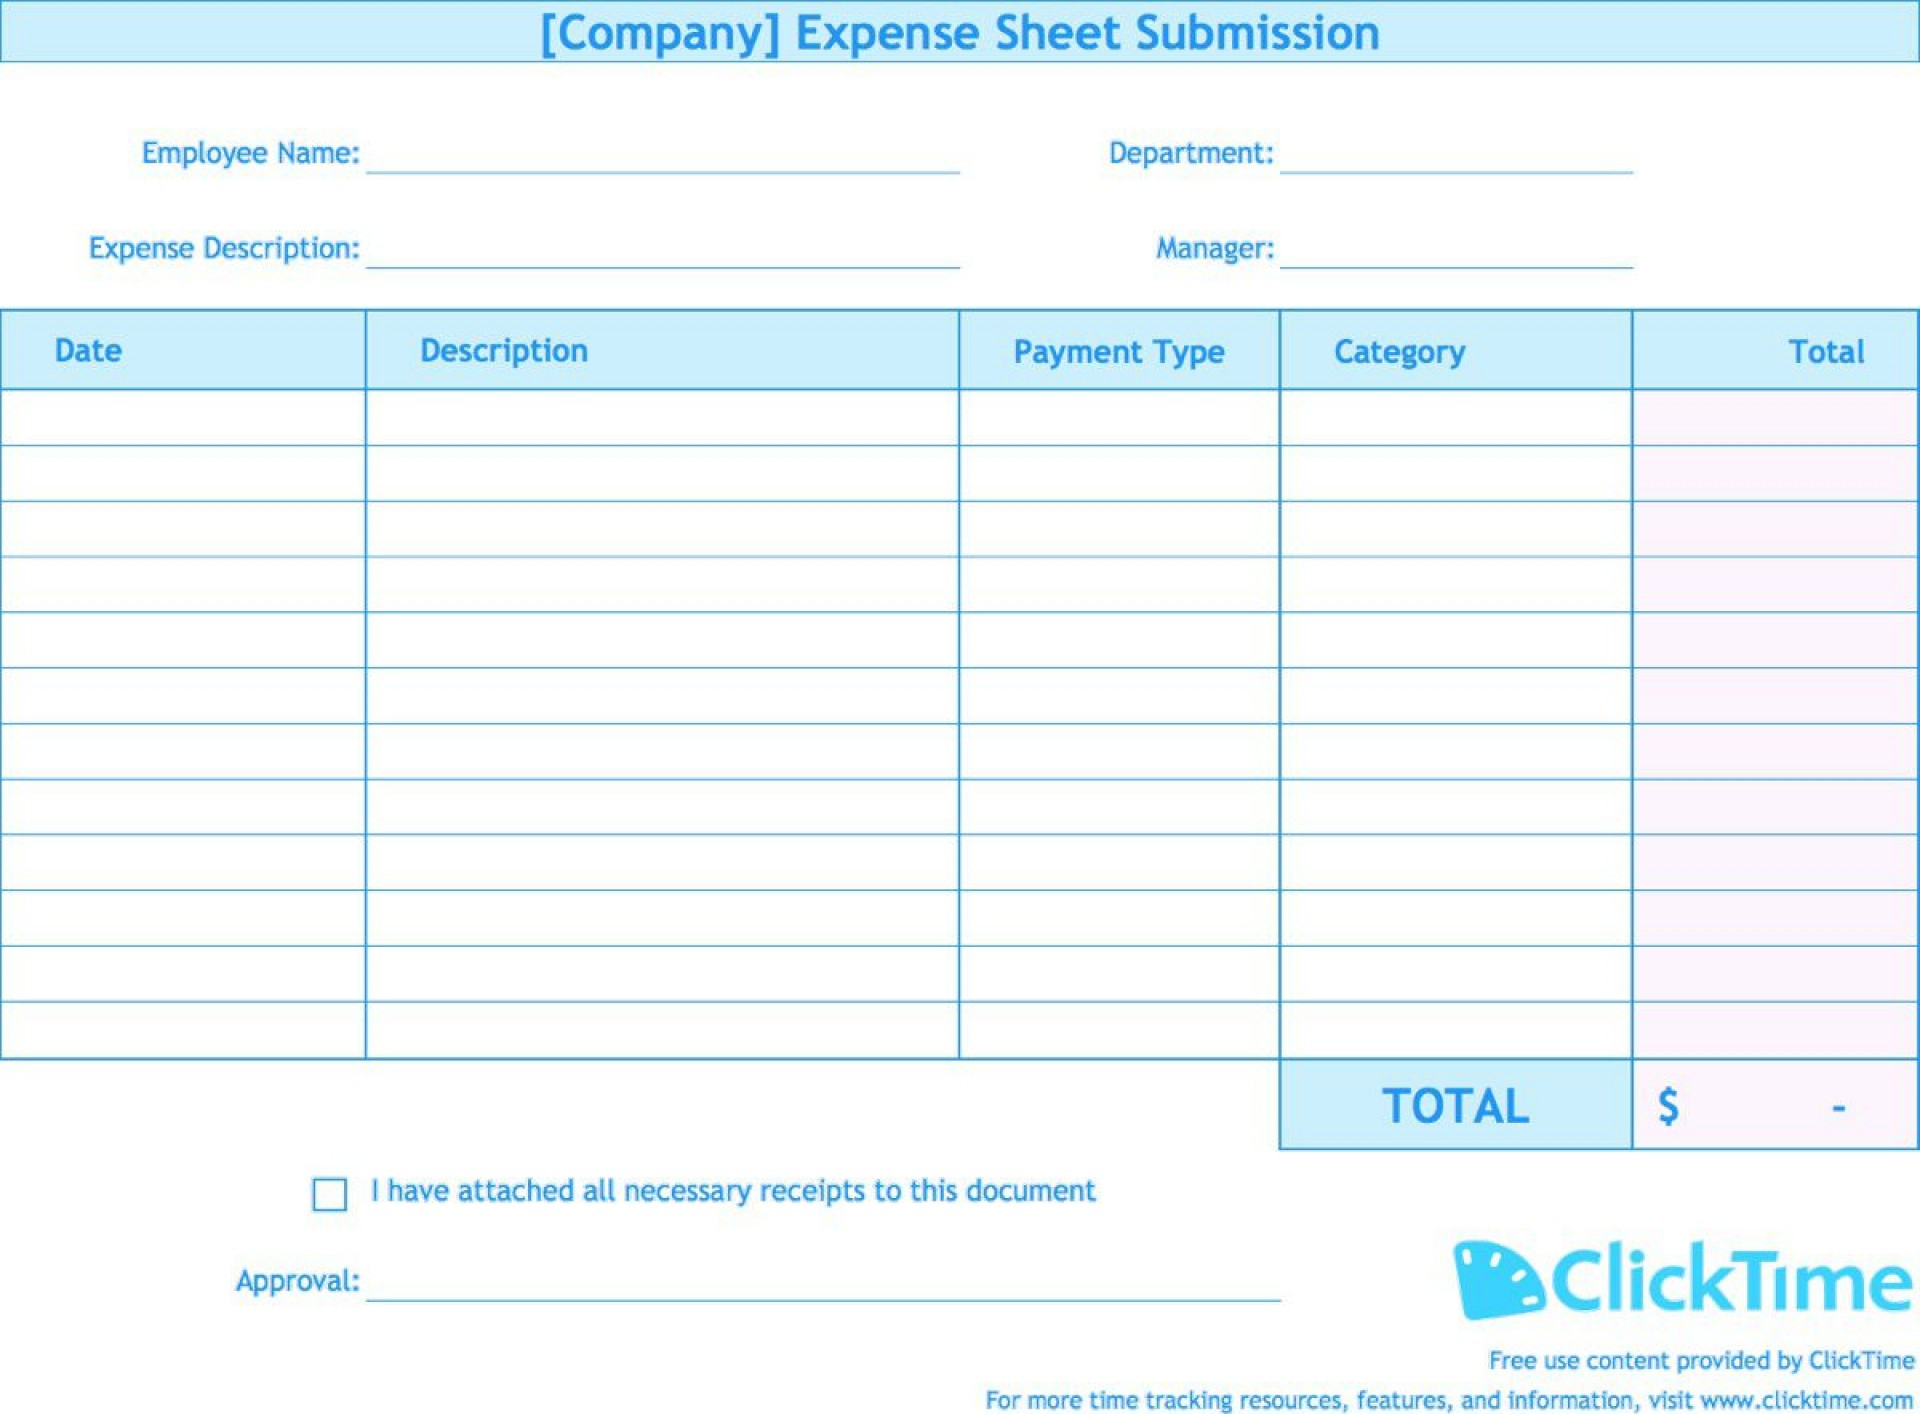 004 Beautiful Expense Report Template Free Highest Clarity  Pdf Excel Download1920